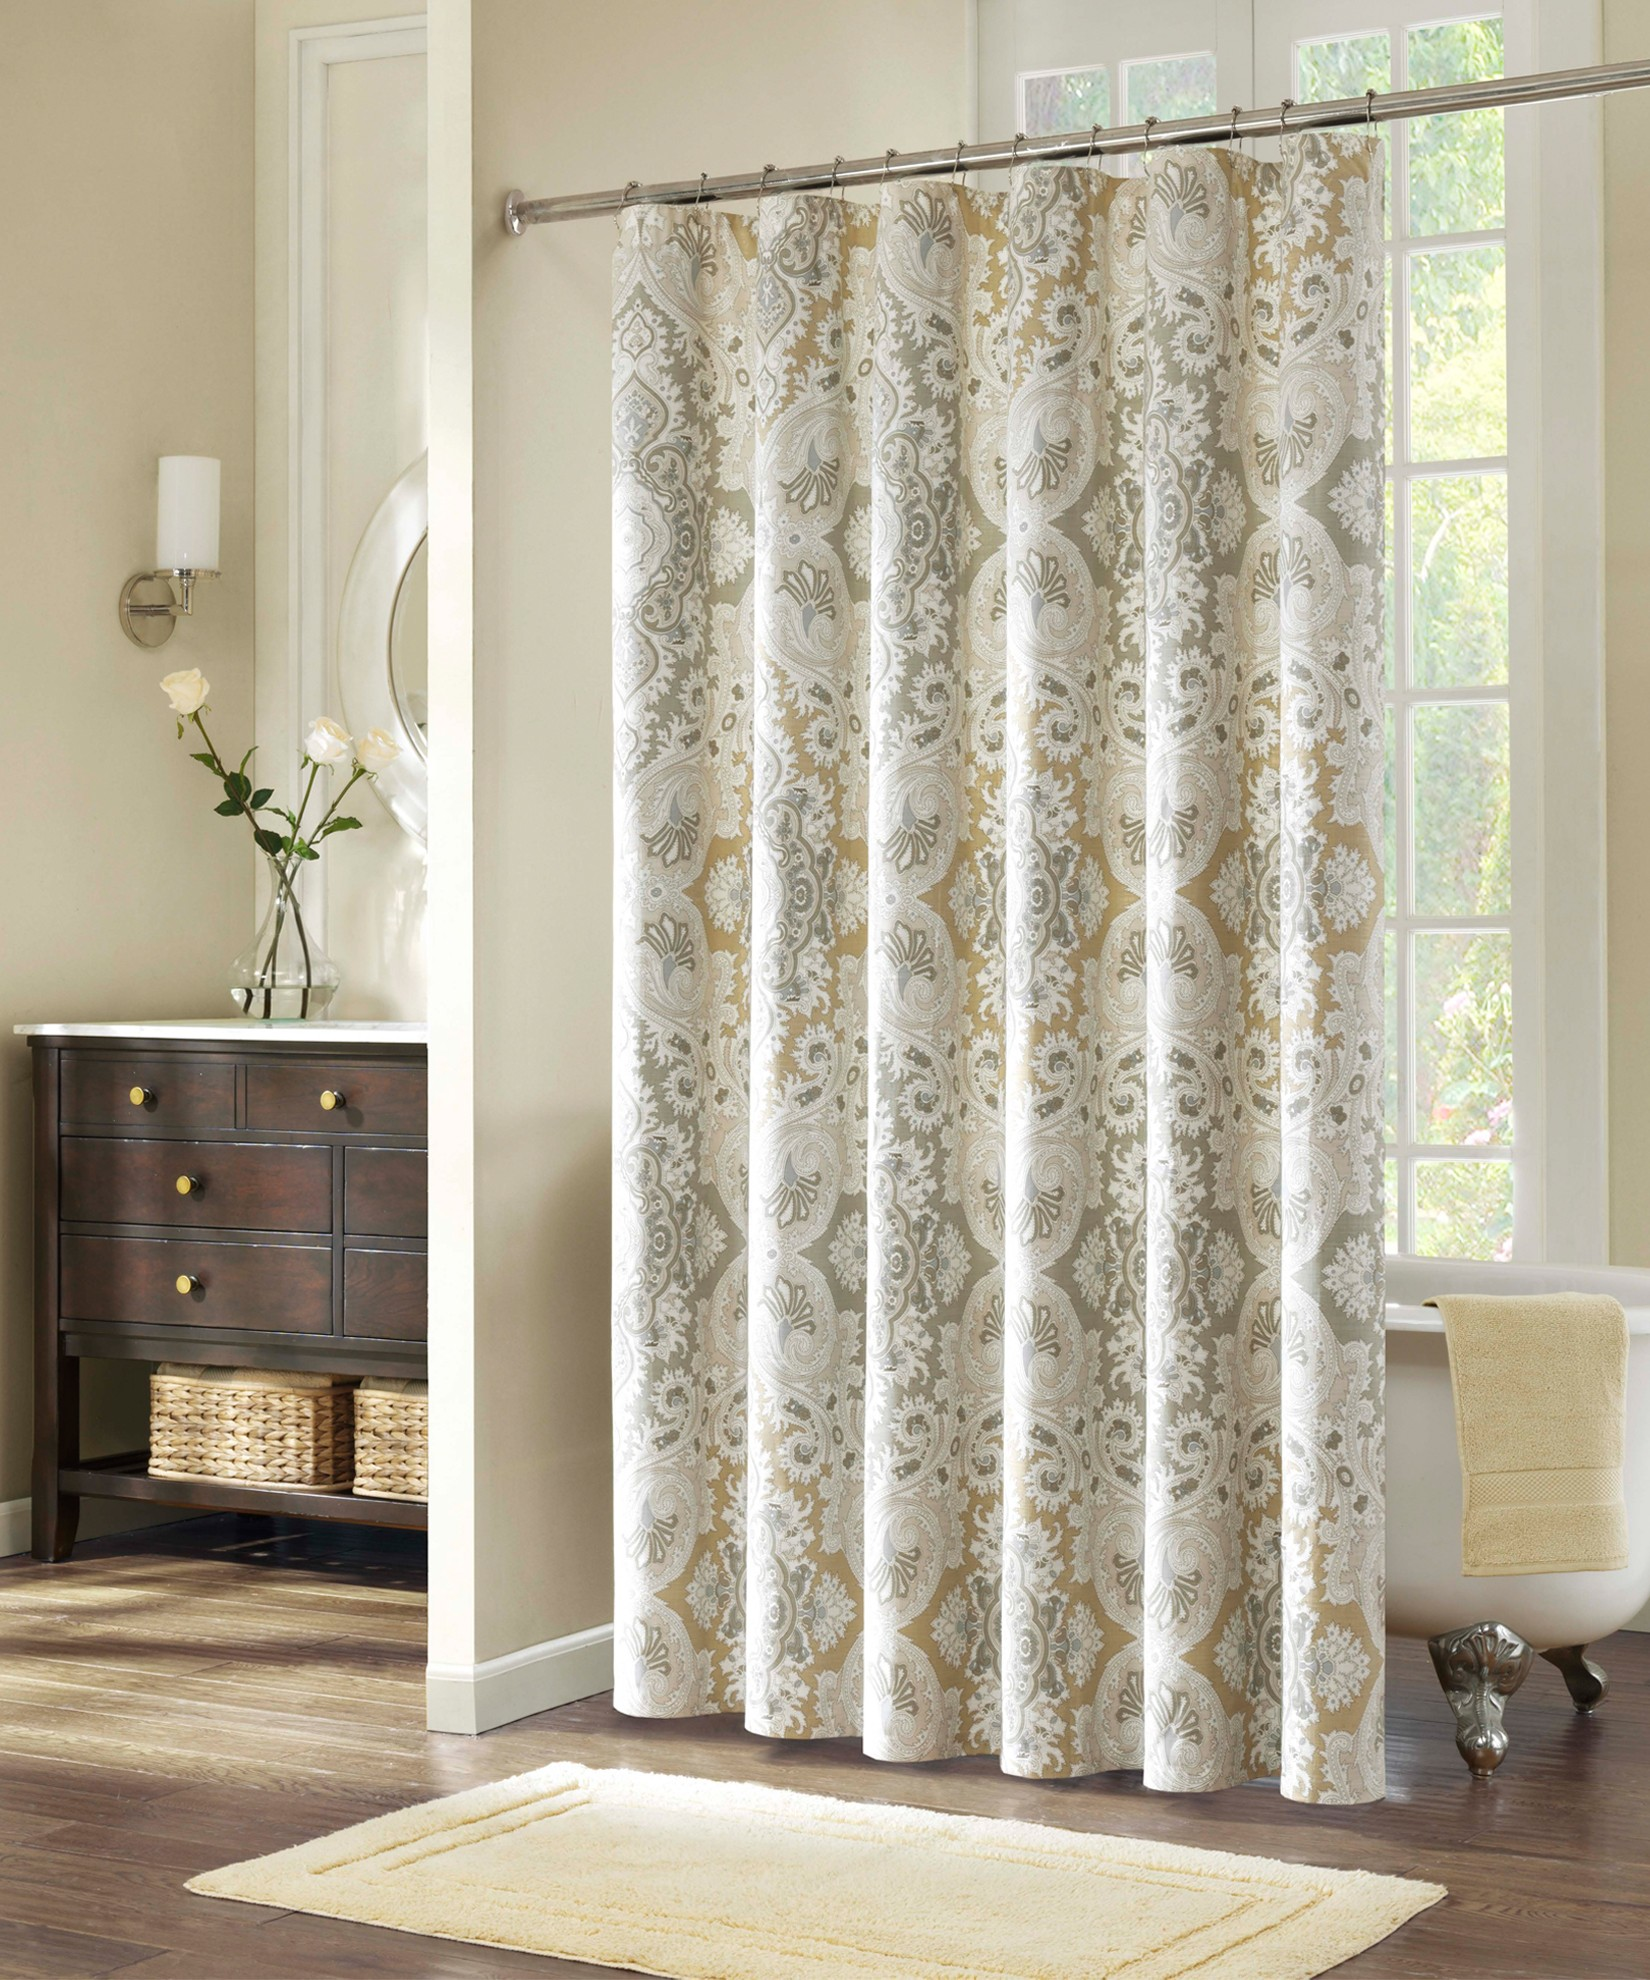 title | Extra Long Shower Curtain Target